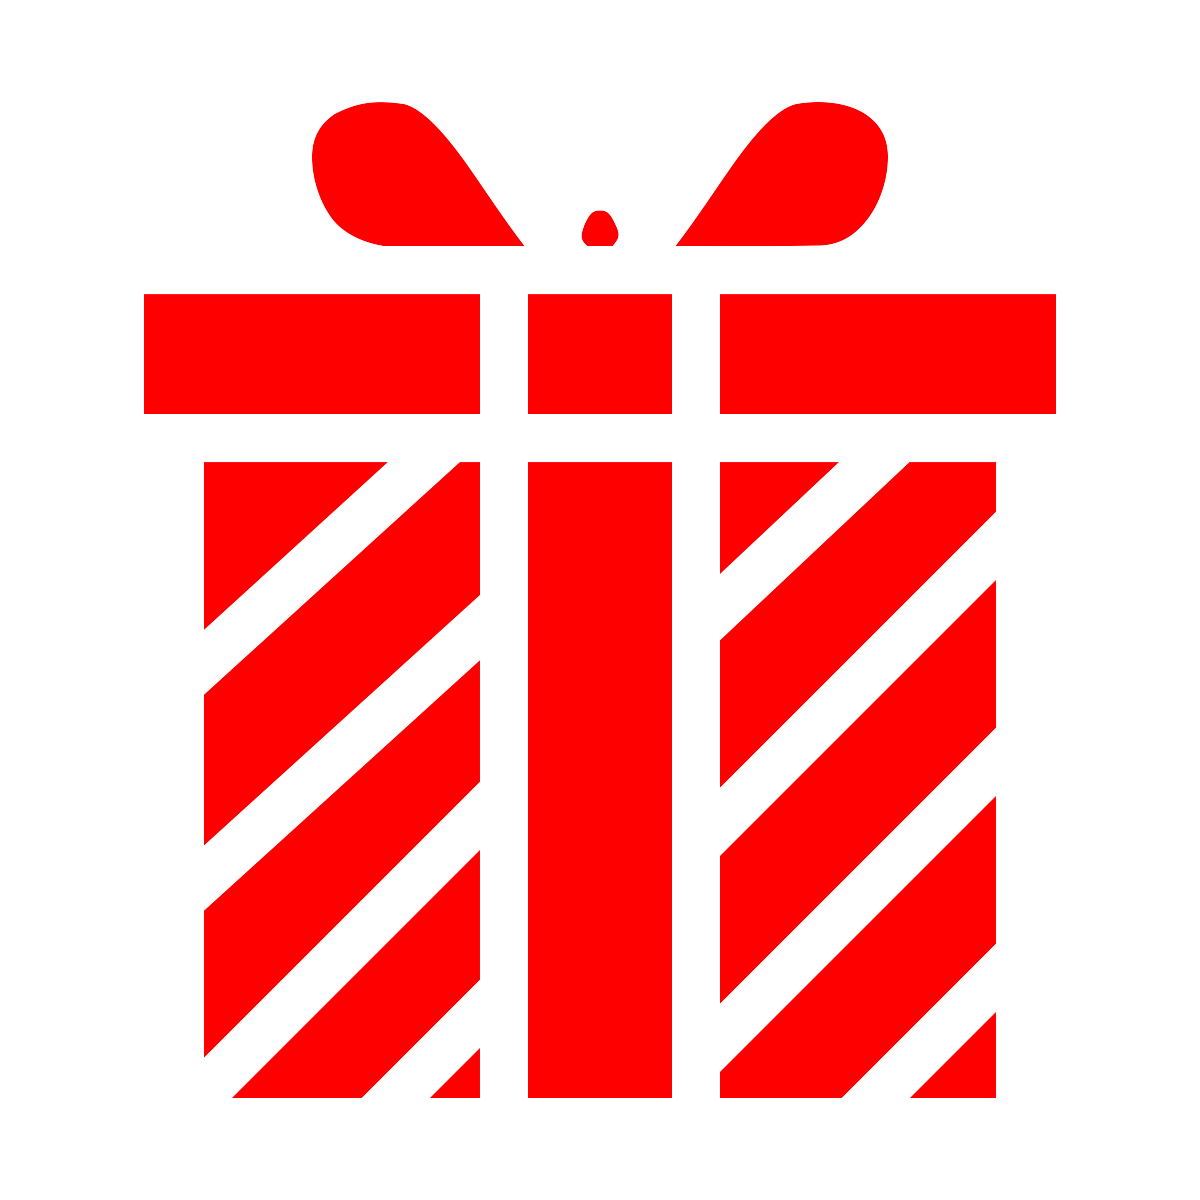 line drawing of a wrapped gift - red color